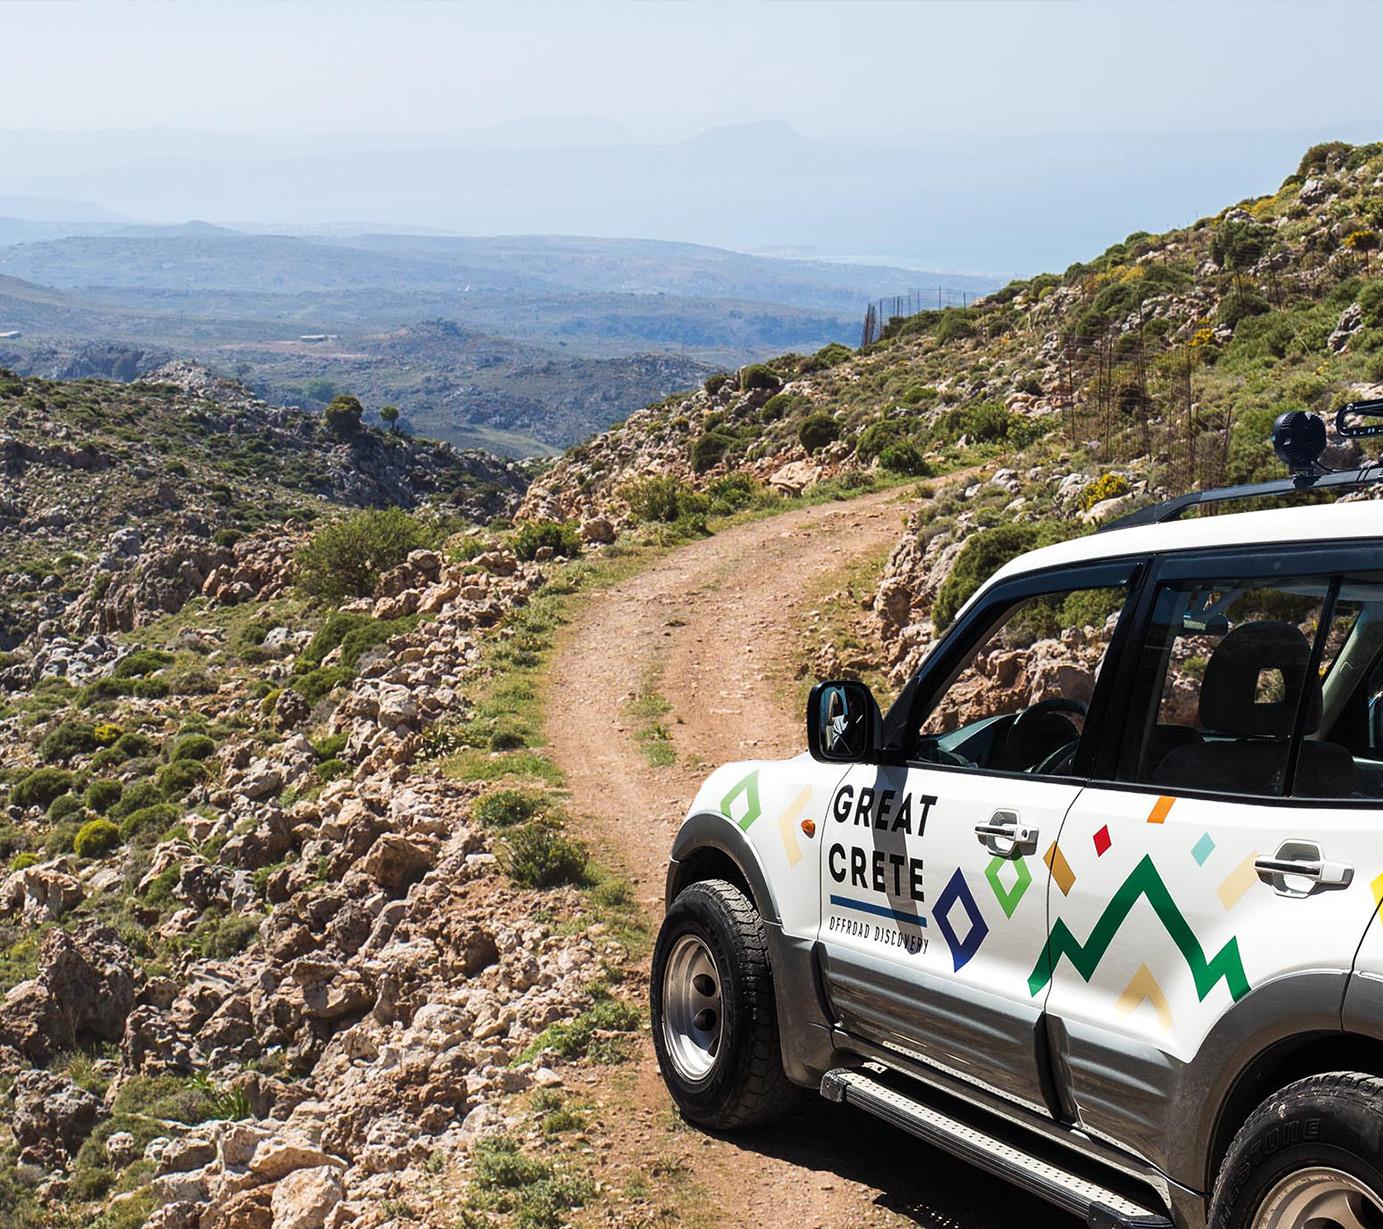 An Authentic Culinary cretan offroad experience